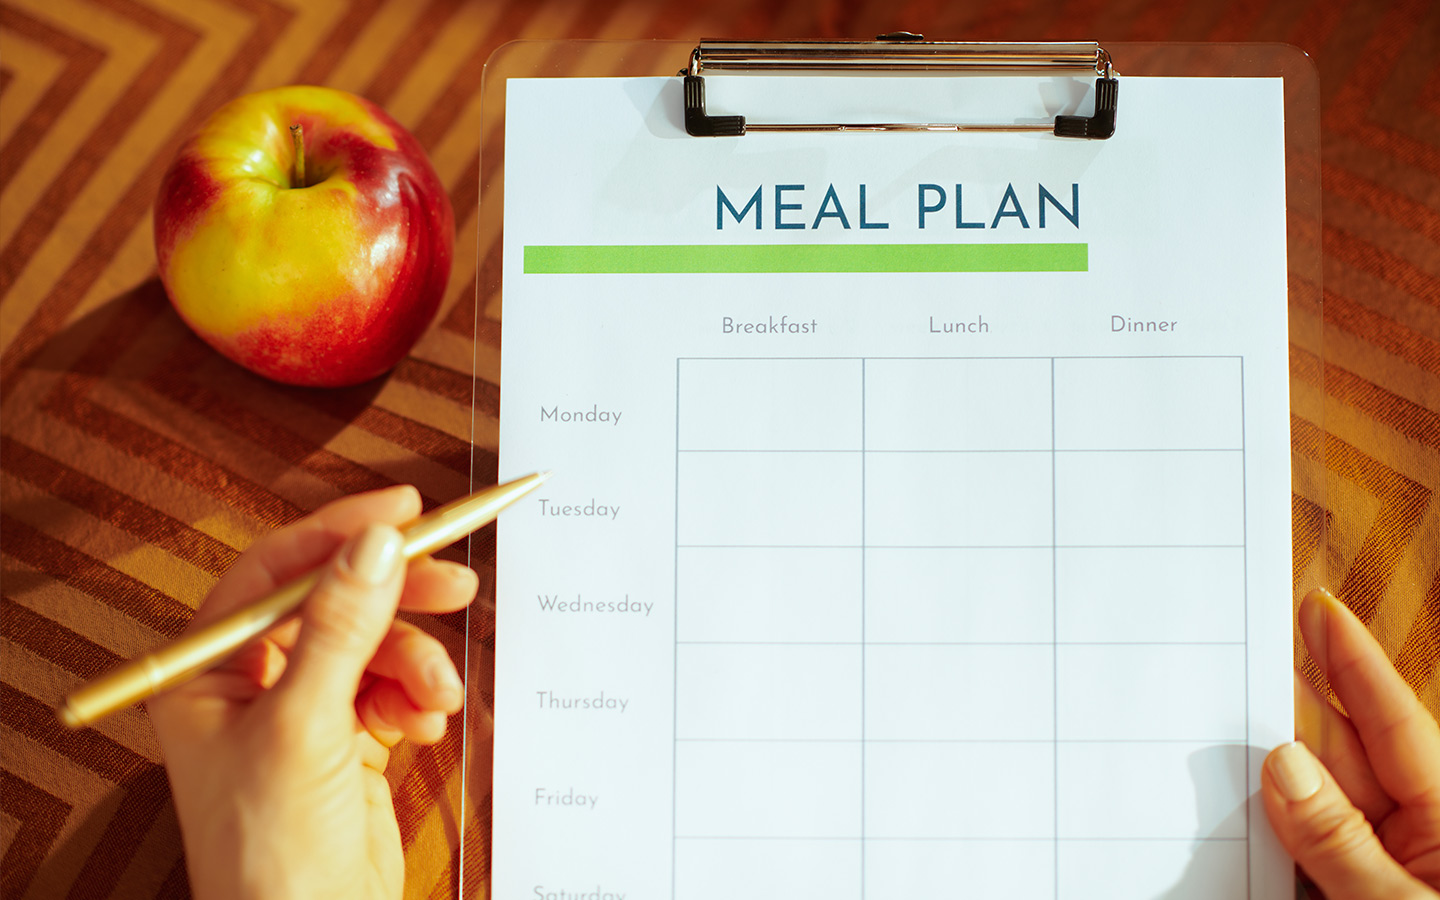 Paperclip board with meal plan sheet on it